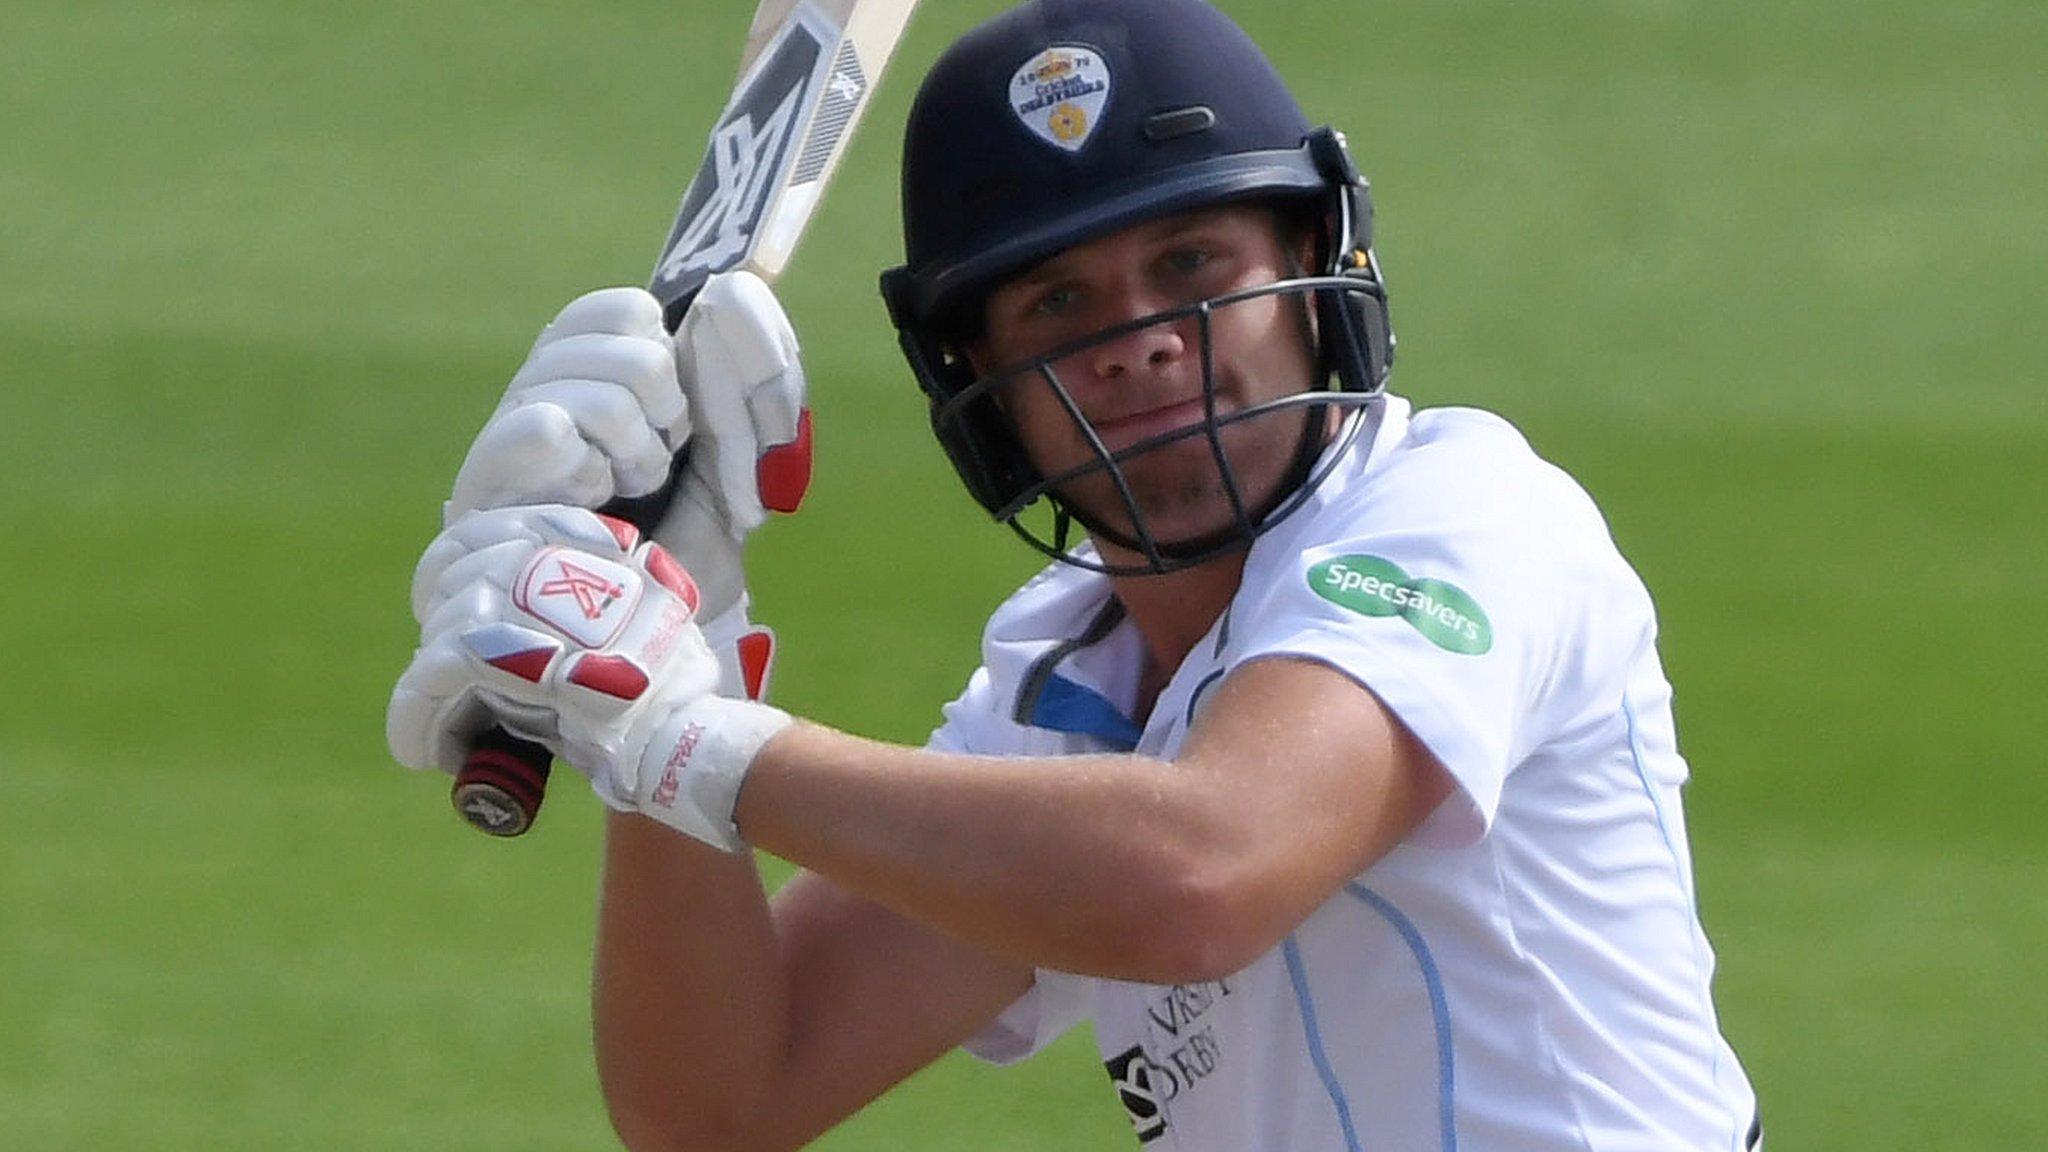 County Championship: Middlesex build lead over Derbyshire after Critchley century